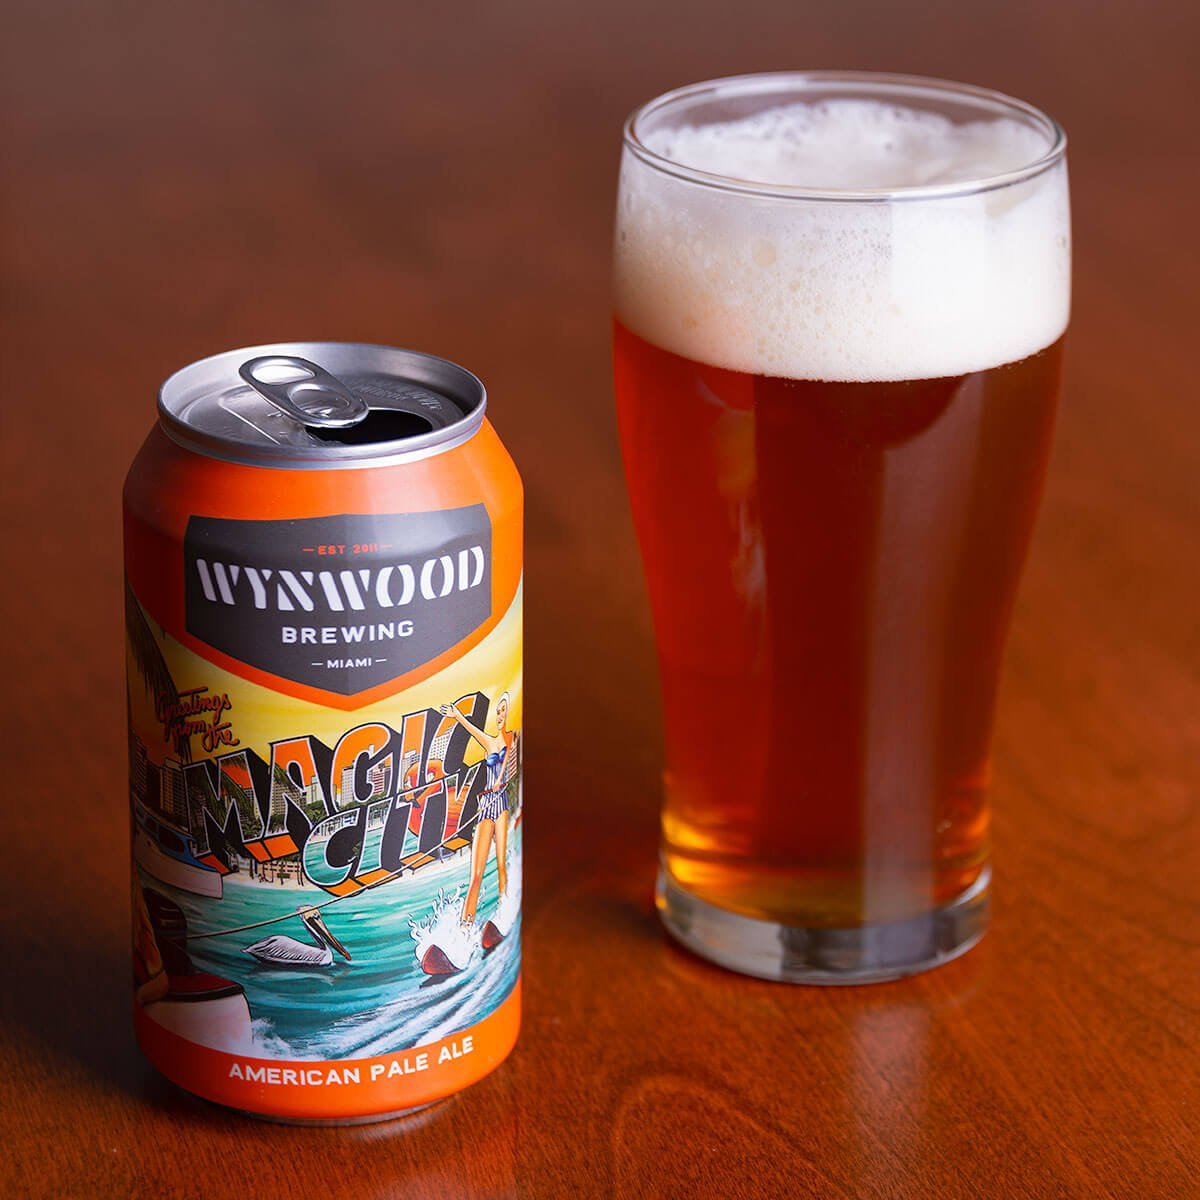 Magic City is an American Pale Ale by Wynwood Brewing Company whose orange-flavored, balanced palate features double-dry-hopped Mosaic.